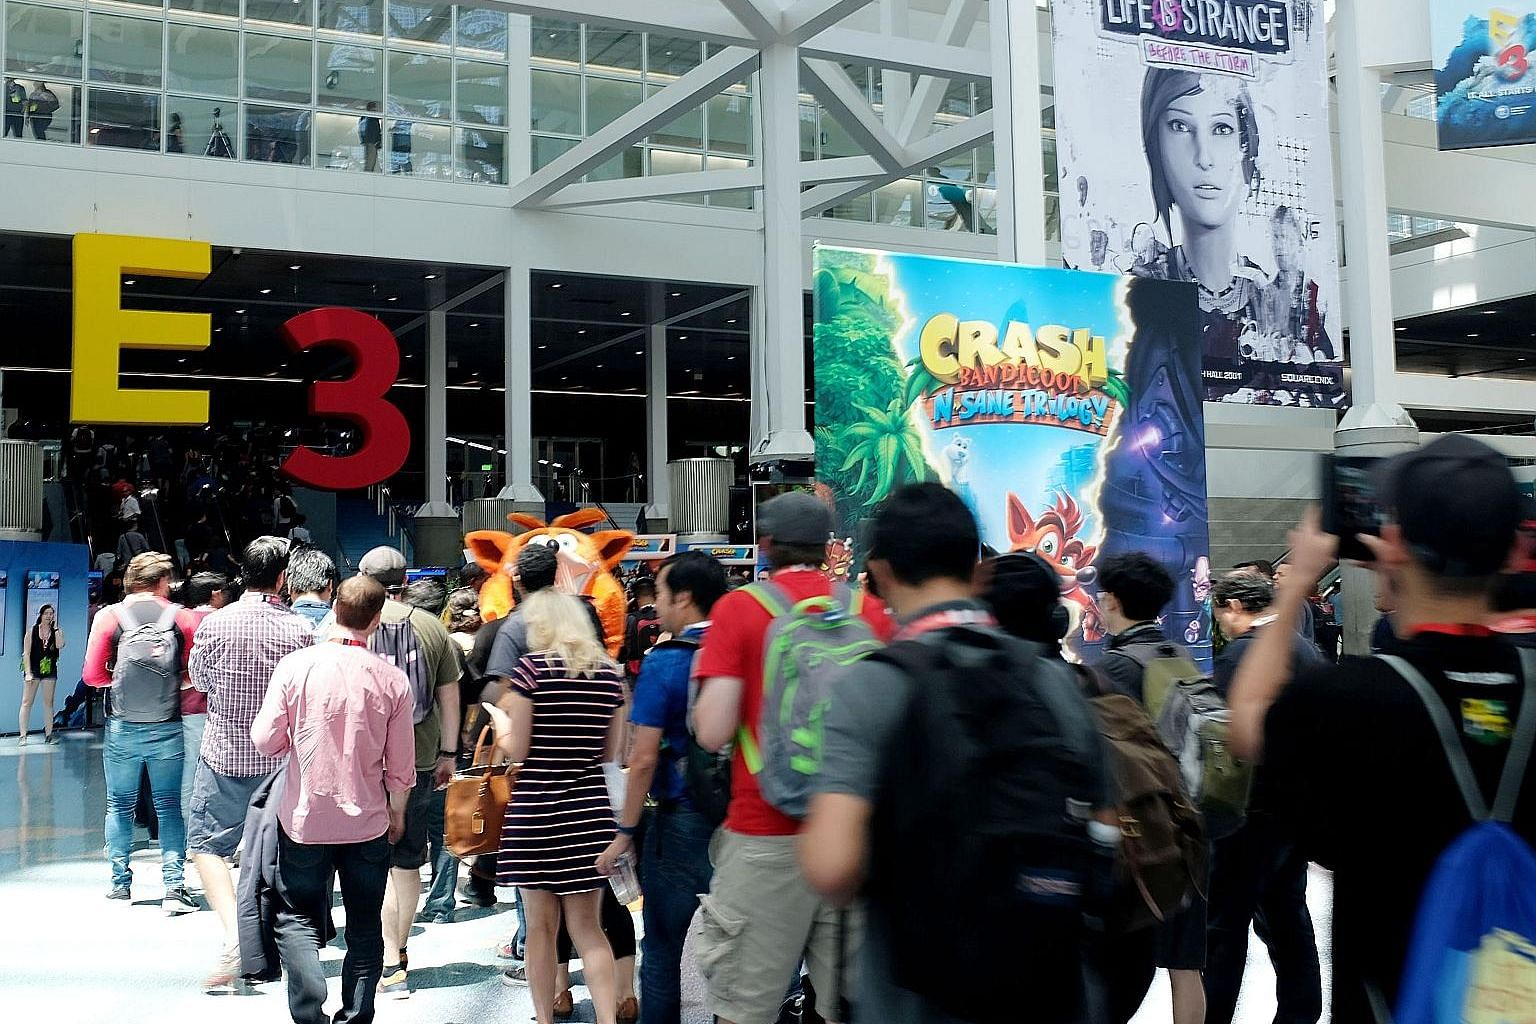 Visitors to the Electronic Entertainment Expo gaming convention queuing up to enter the exhibition hall at the Los Angeles Convention Center on June 15. It was the first time in its 22-year history that E3 had opened the show to the public.